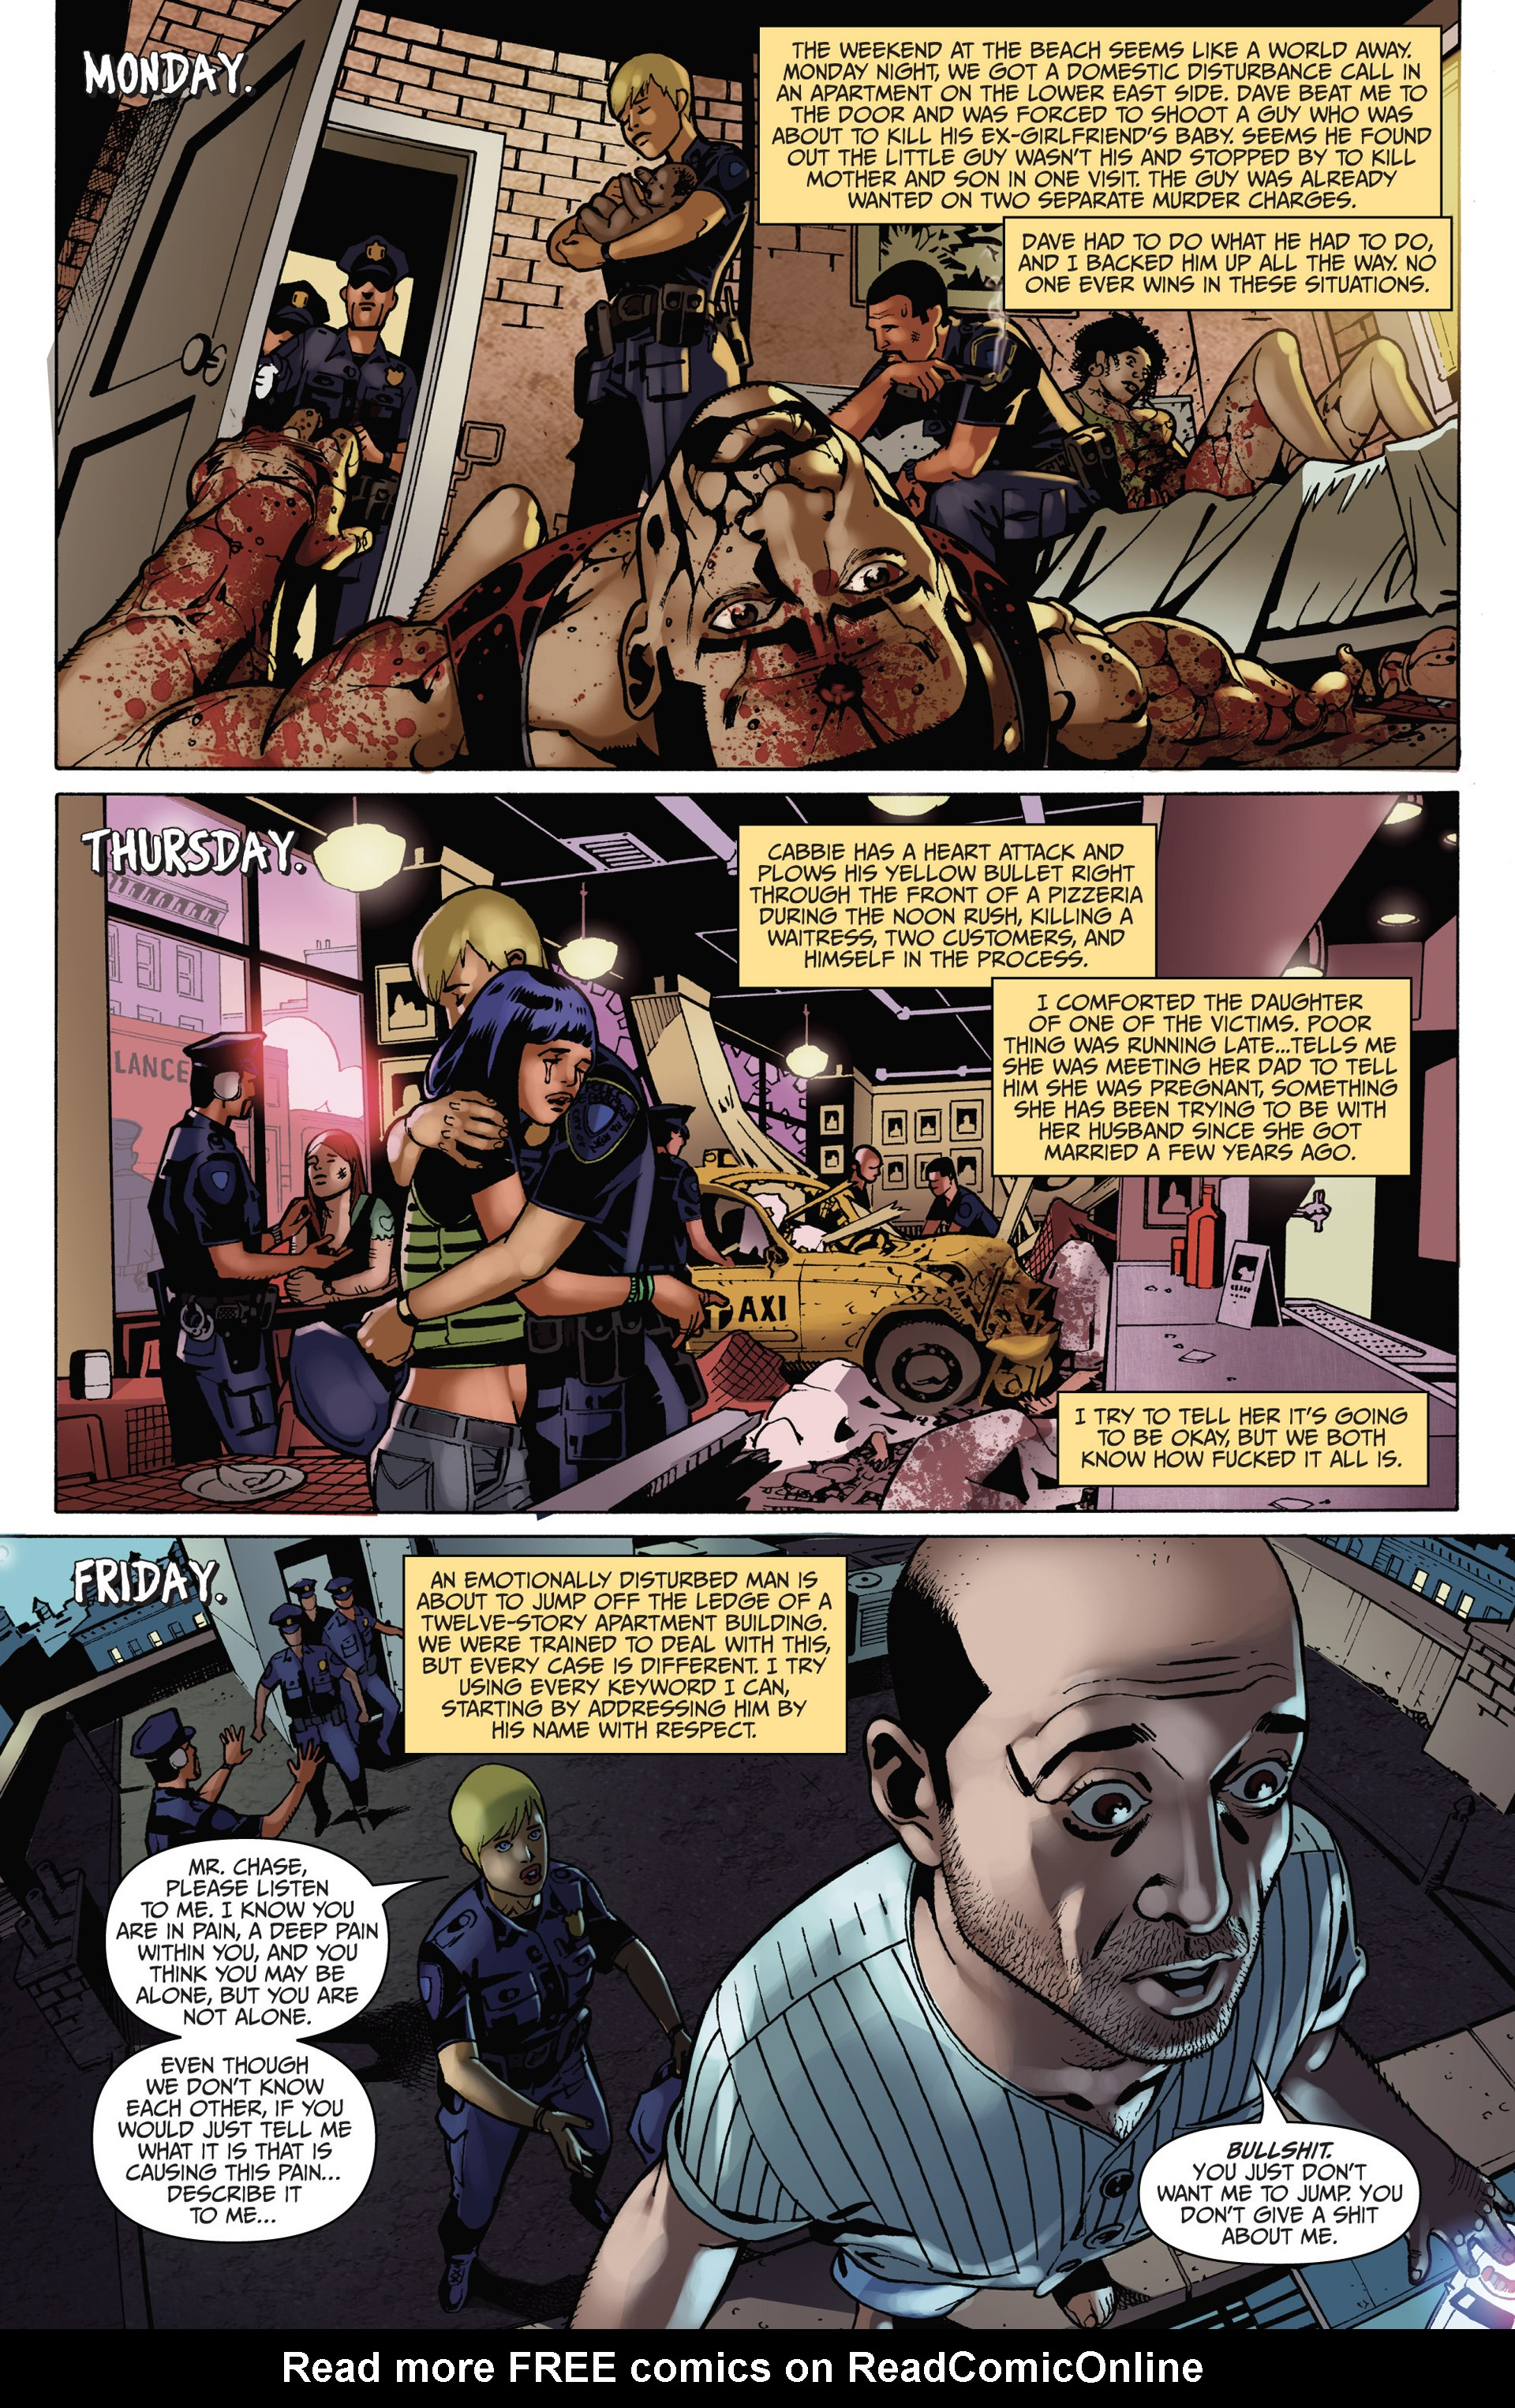 Read online Sex and Violence comic -  Issue # Full - 46